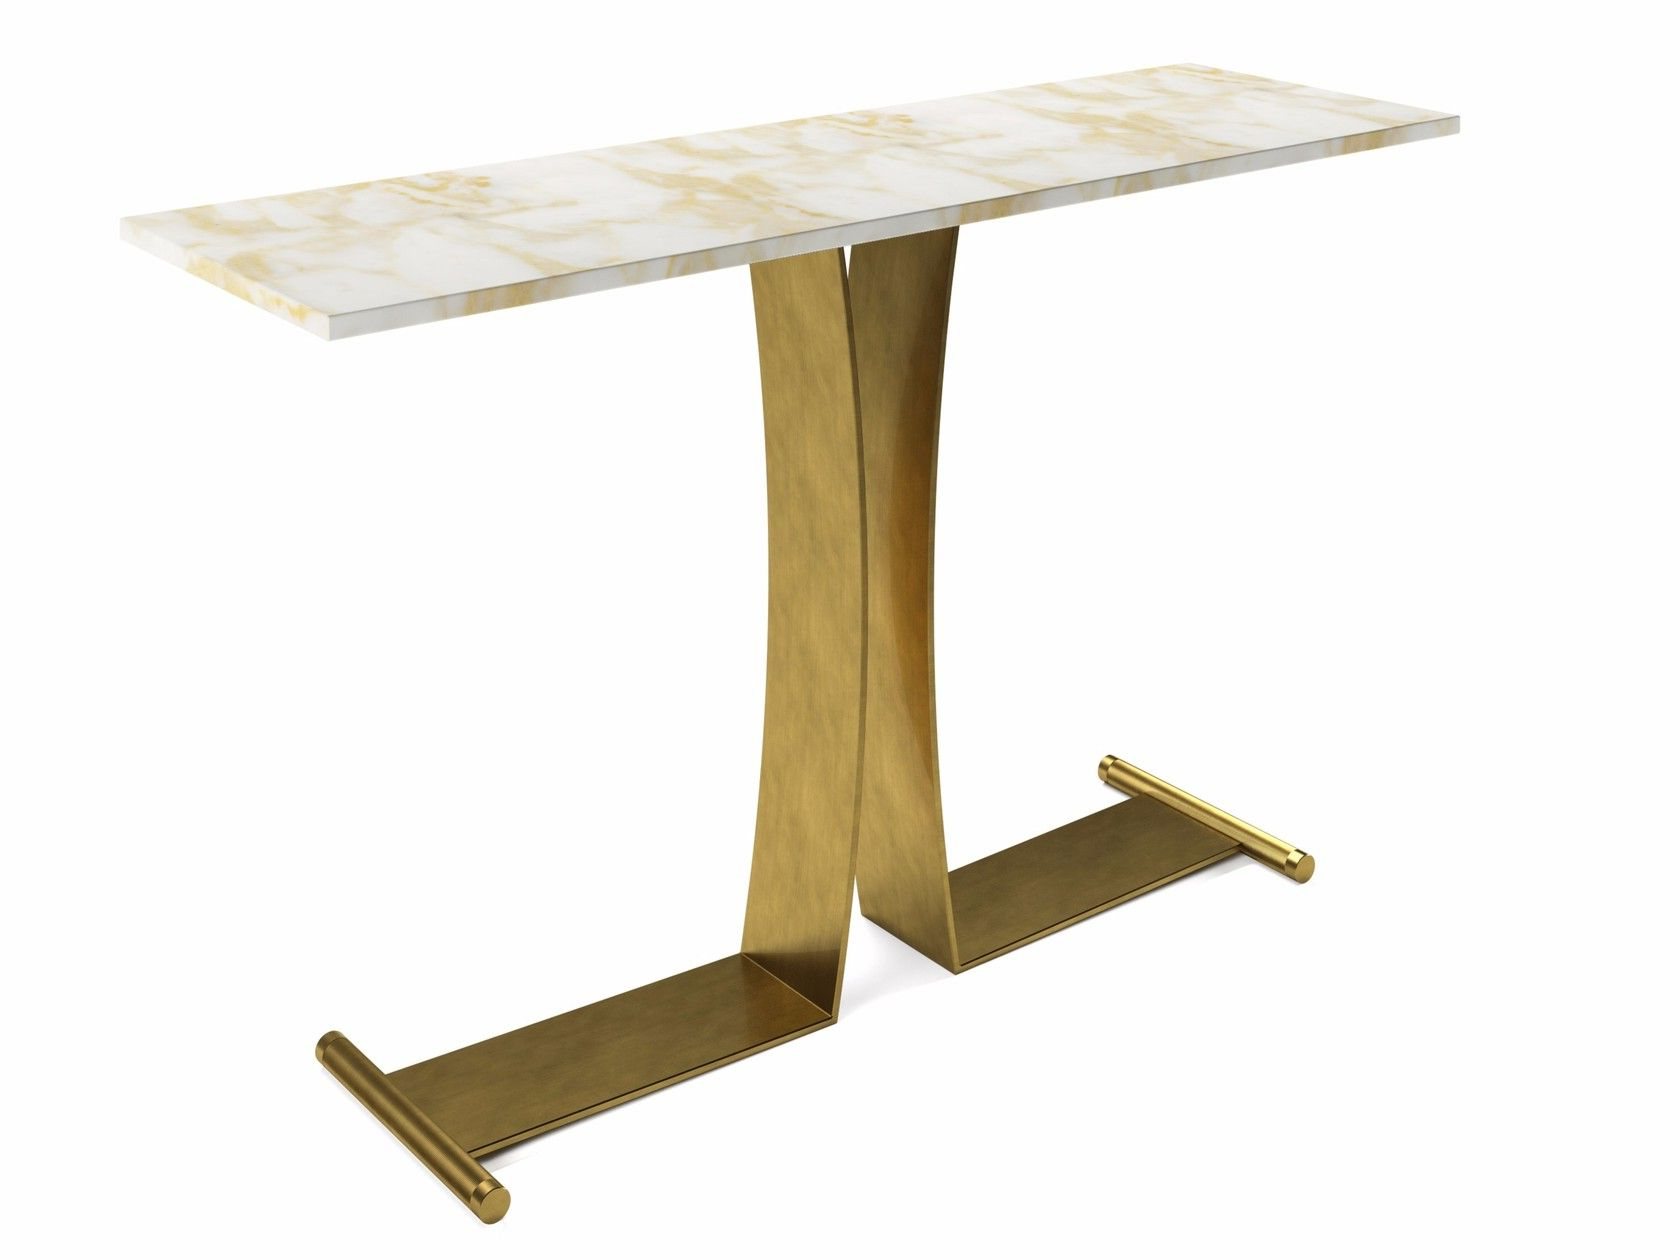 Guy | Console Table In 2018 | 1gja Console Tables | Pinterest Regarding Parsons Concrete Top & Dark Steel Base 48x16 Console Tables (View 16 of 20)